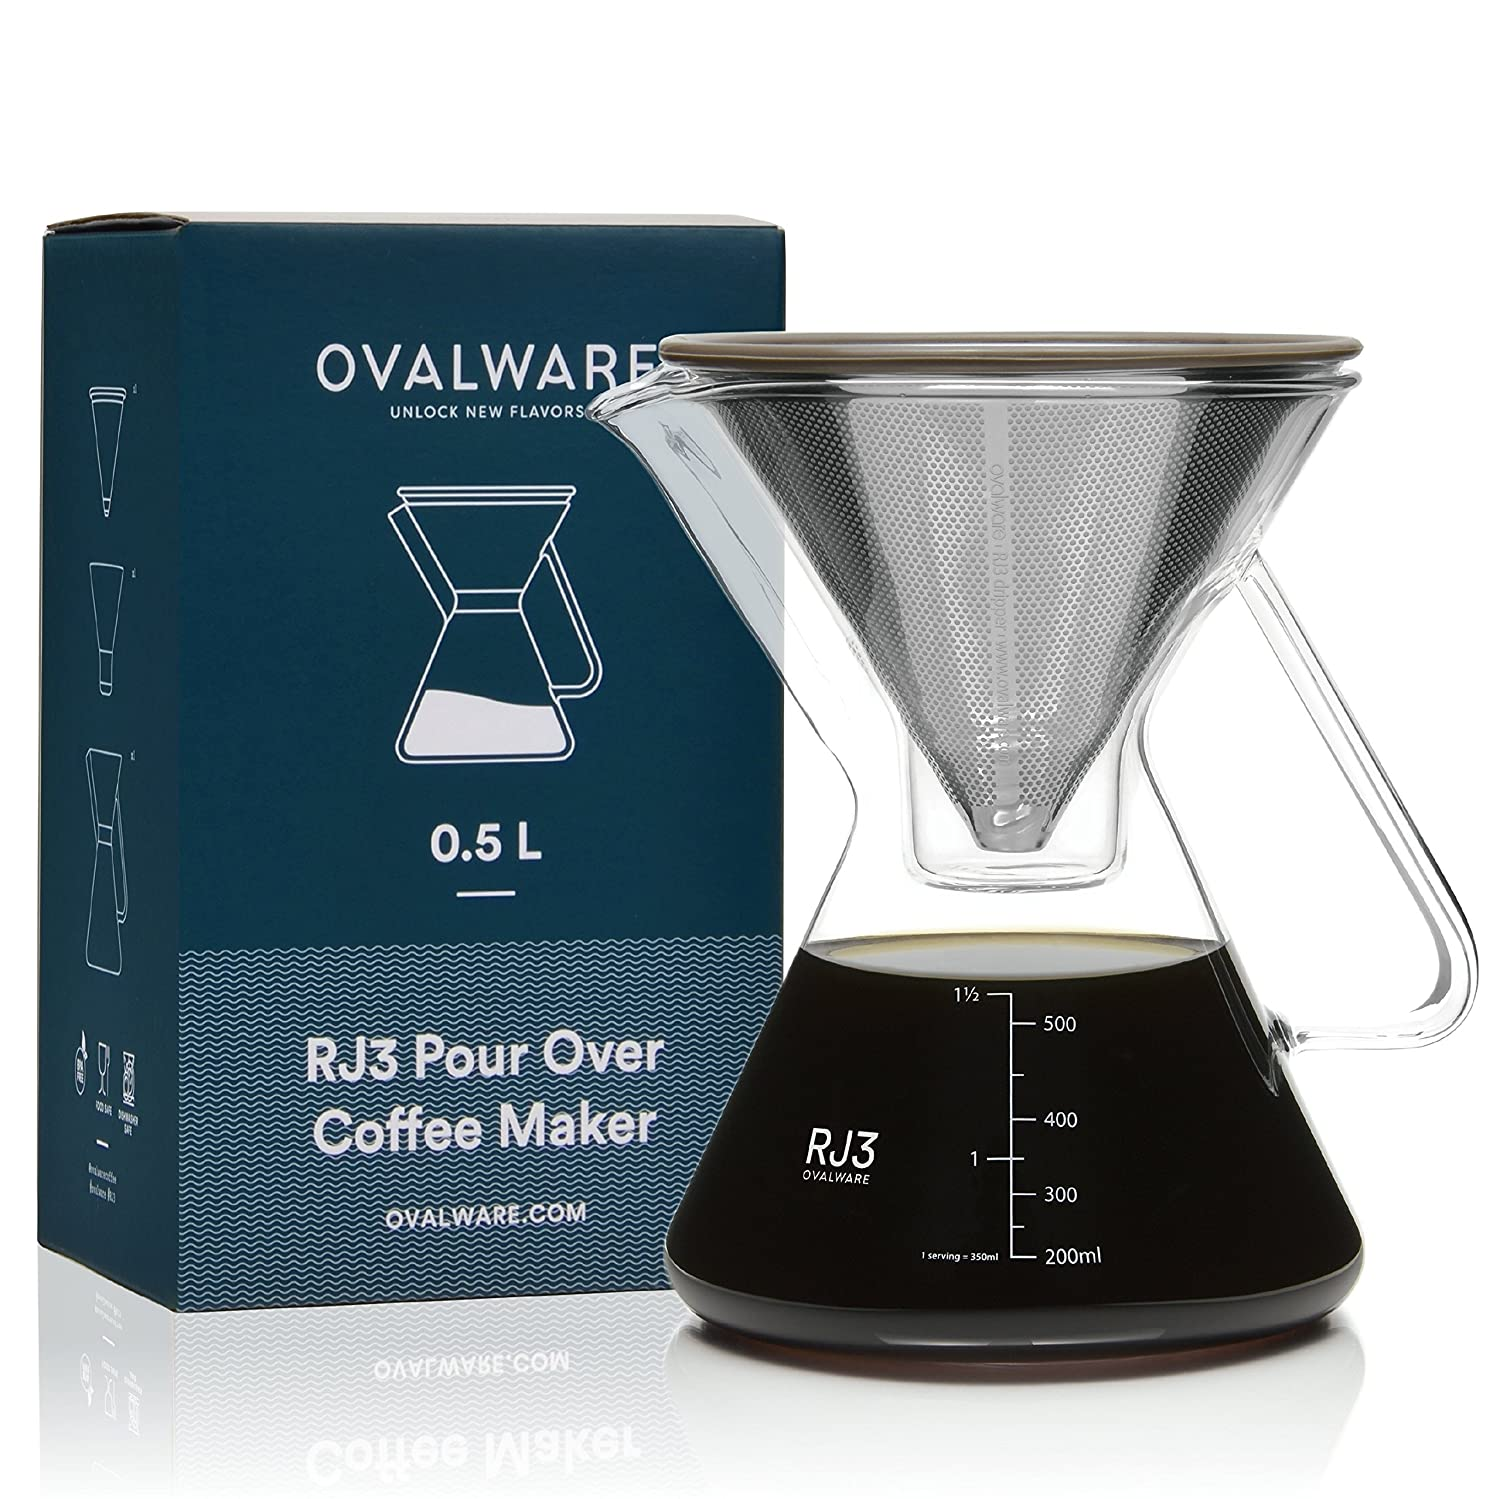 Ovalware Hand-blown Pour Over Carafe Coffee Maker 0.5L with Stainless Steel Filter and Multi-Purpose Glass Measurement Cup and Filter Stand (0.5 Liter/17 oz)